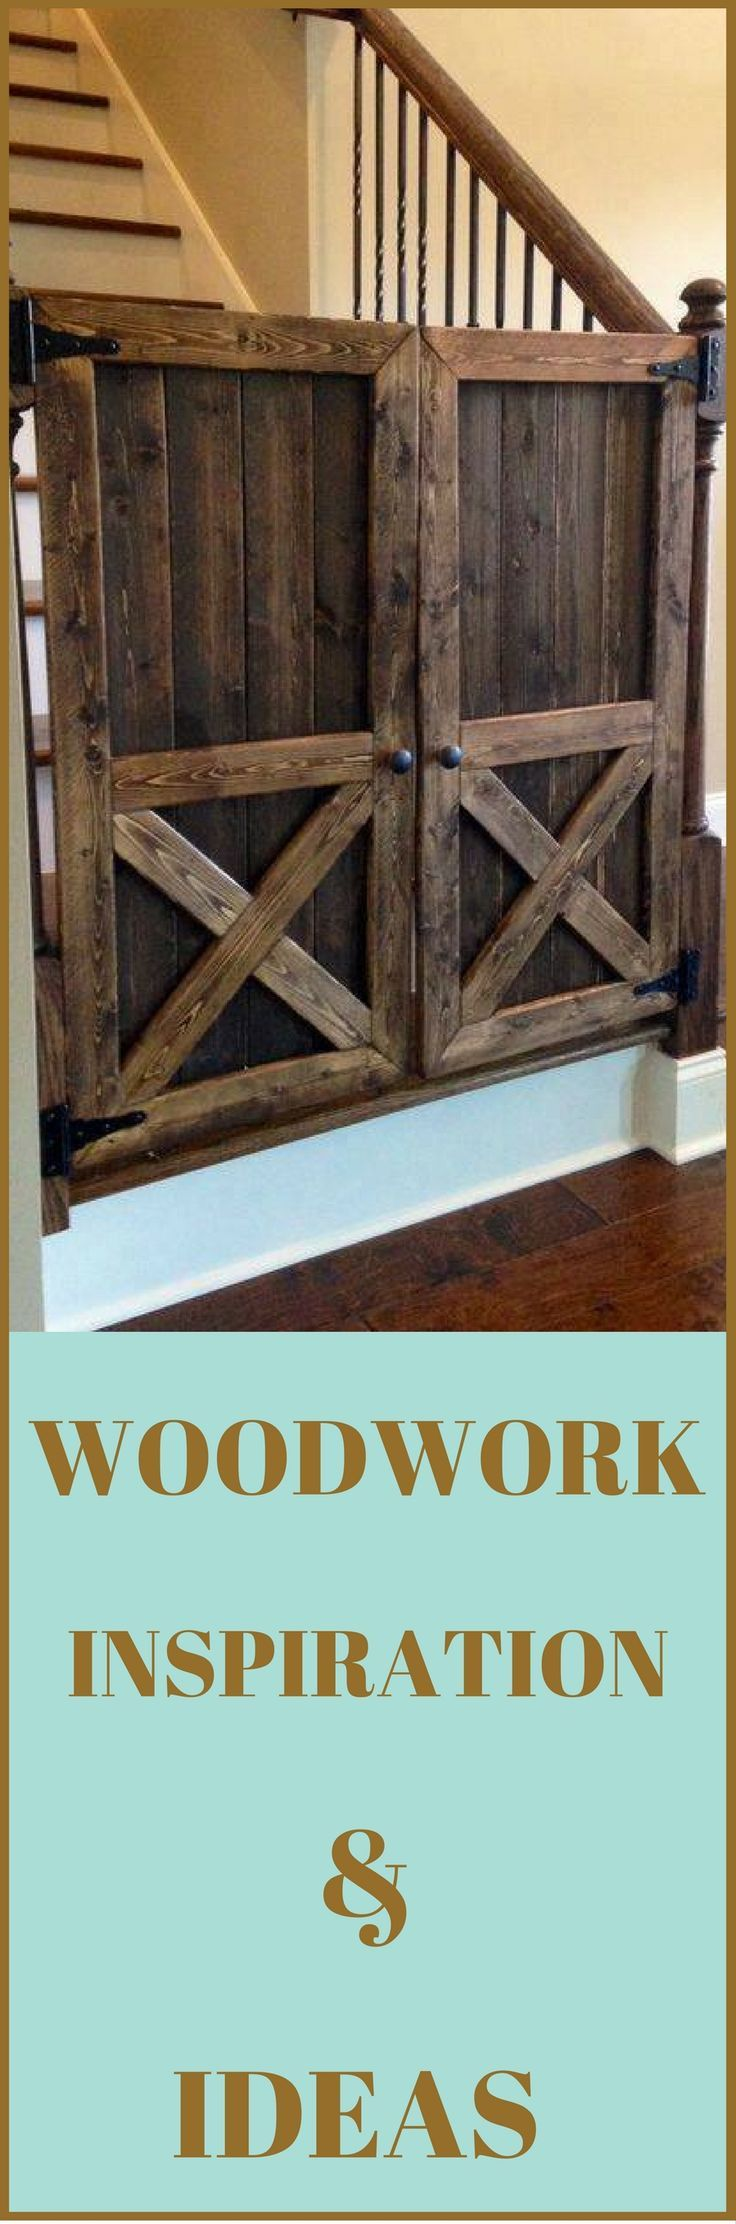 http://woodworkingchics.com/ I would like something less rustic.